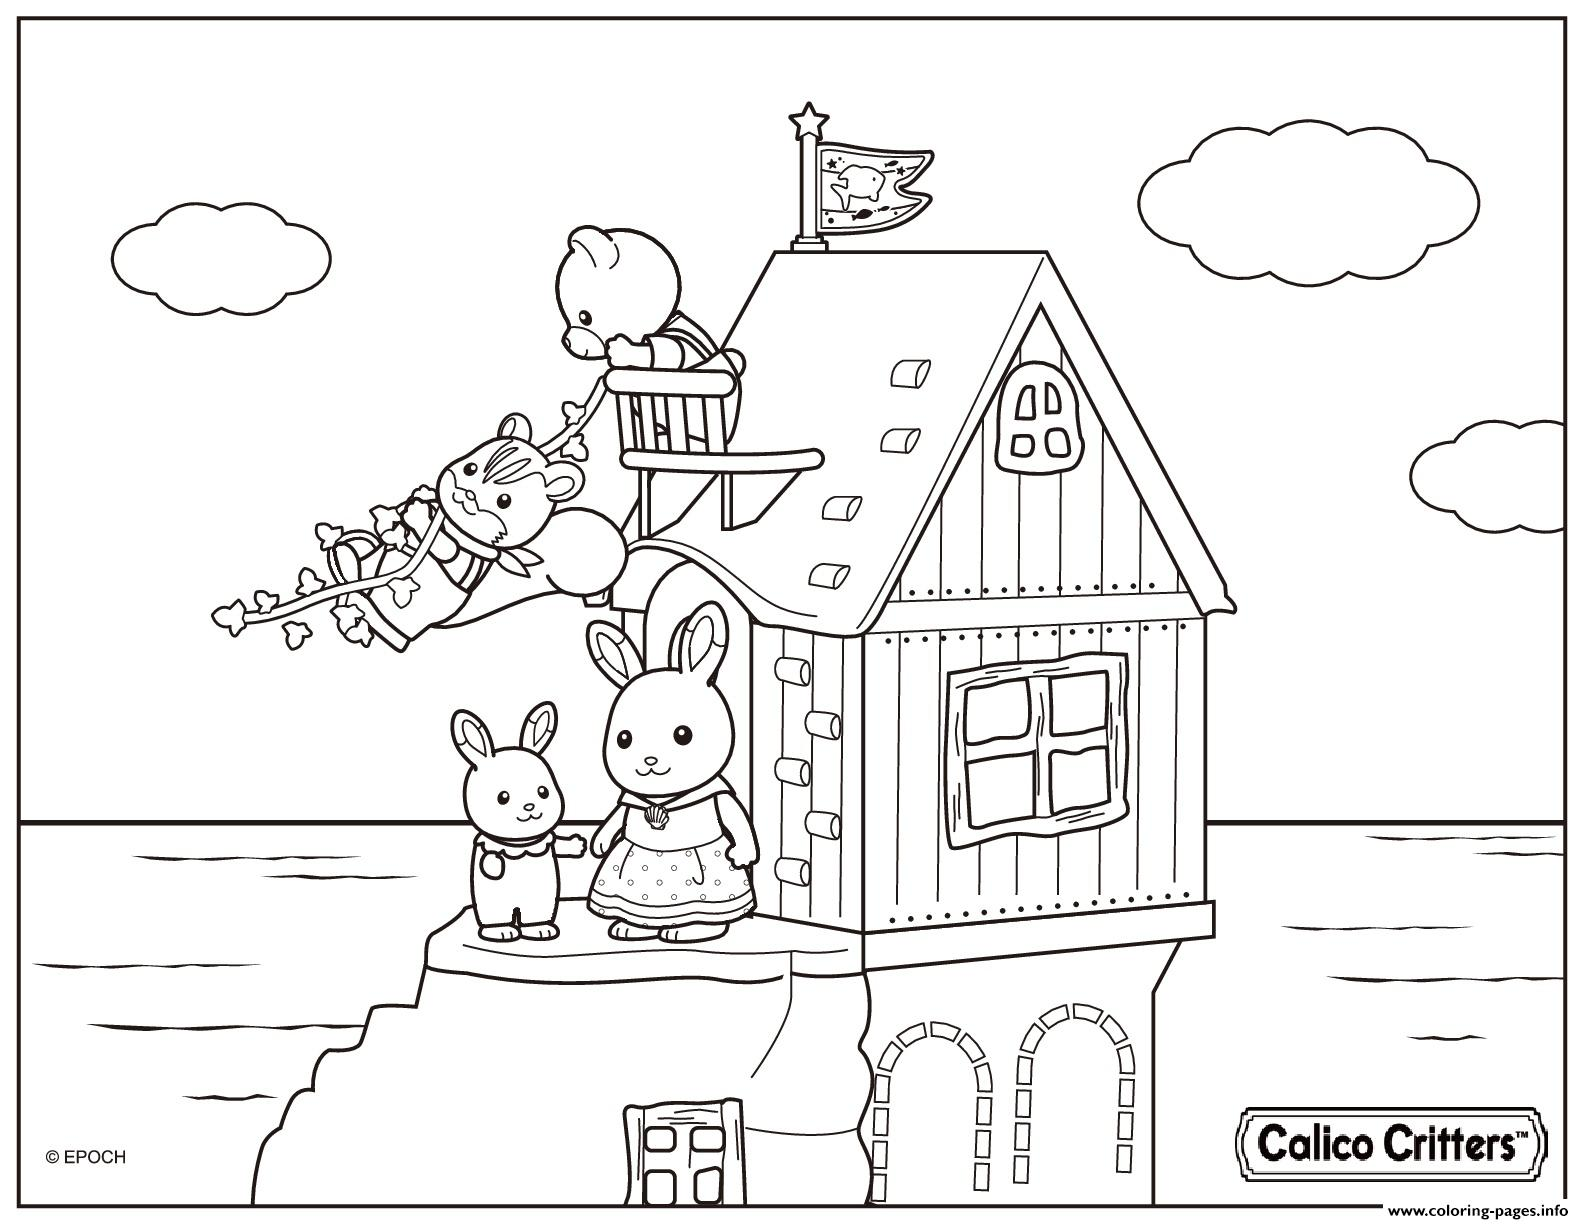 Calico Critters Coloring Pages At Getdrawings Com Free For